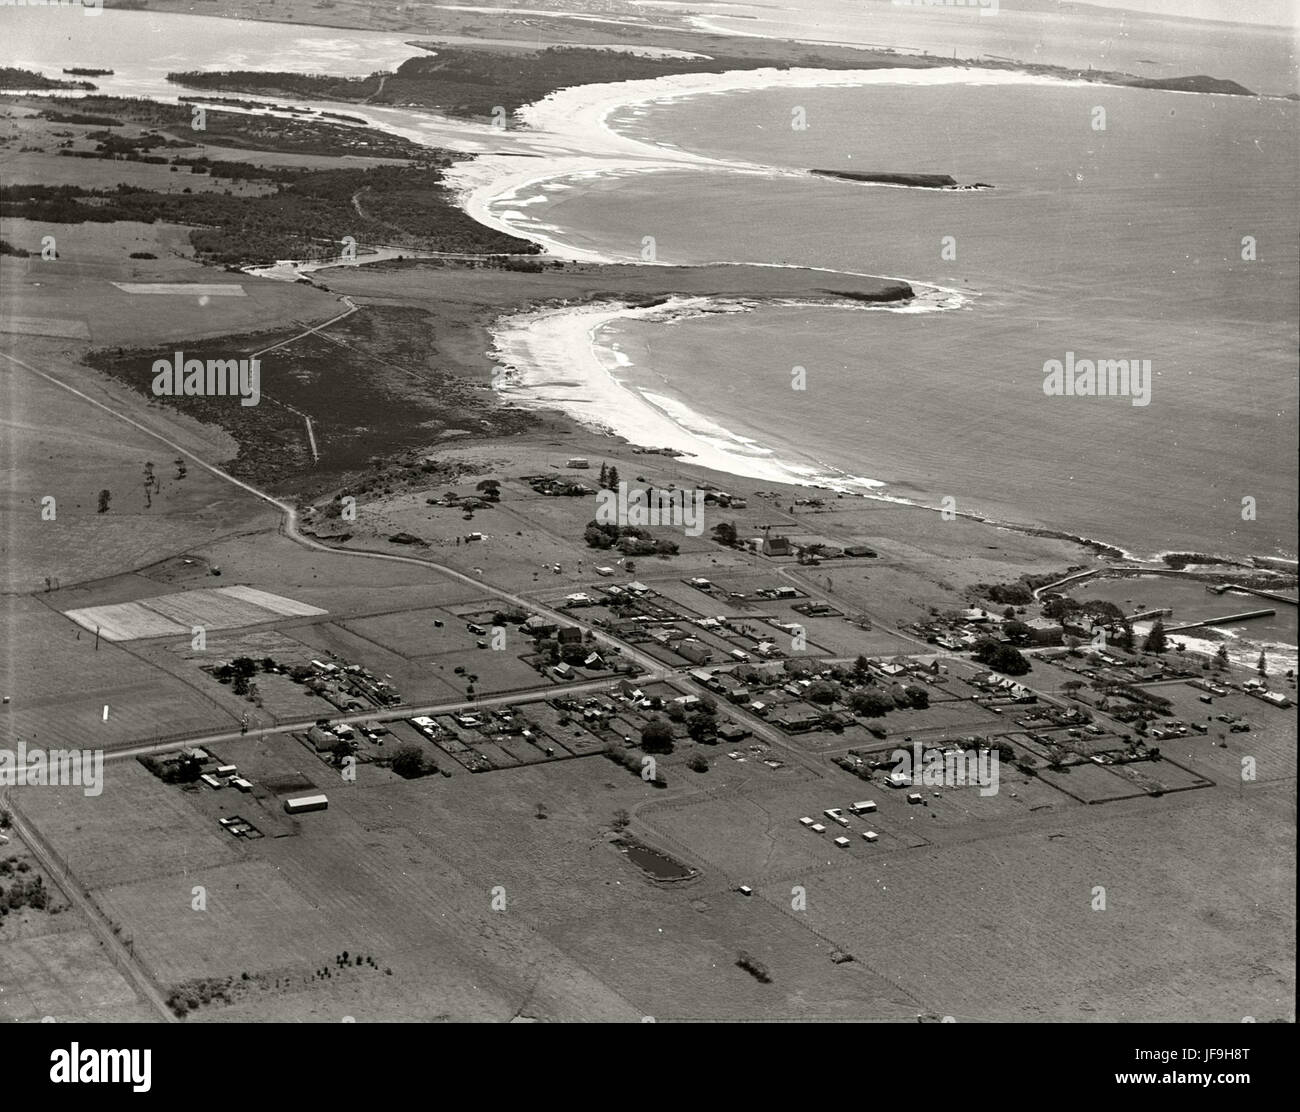 Shell Harbour - 1936 29641117454 o - Stock Image